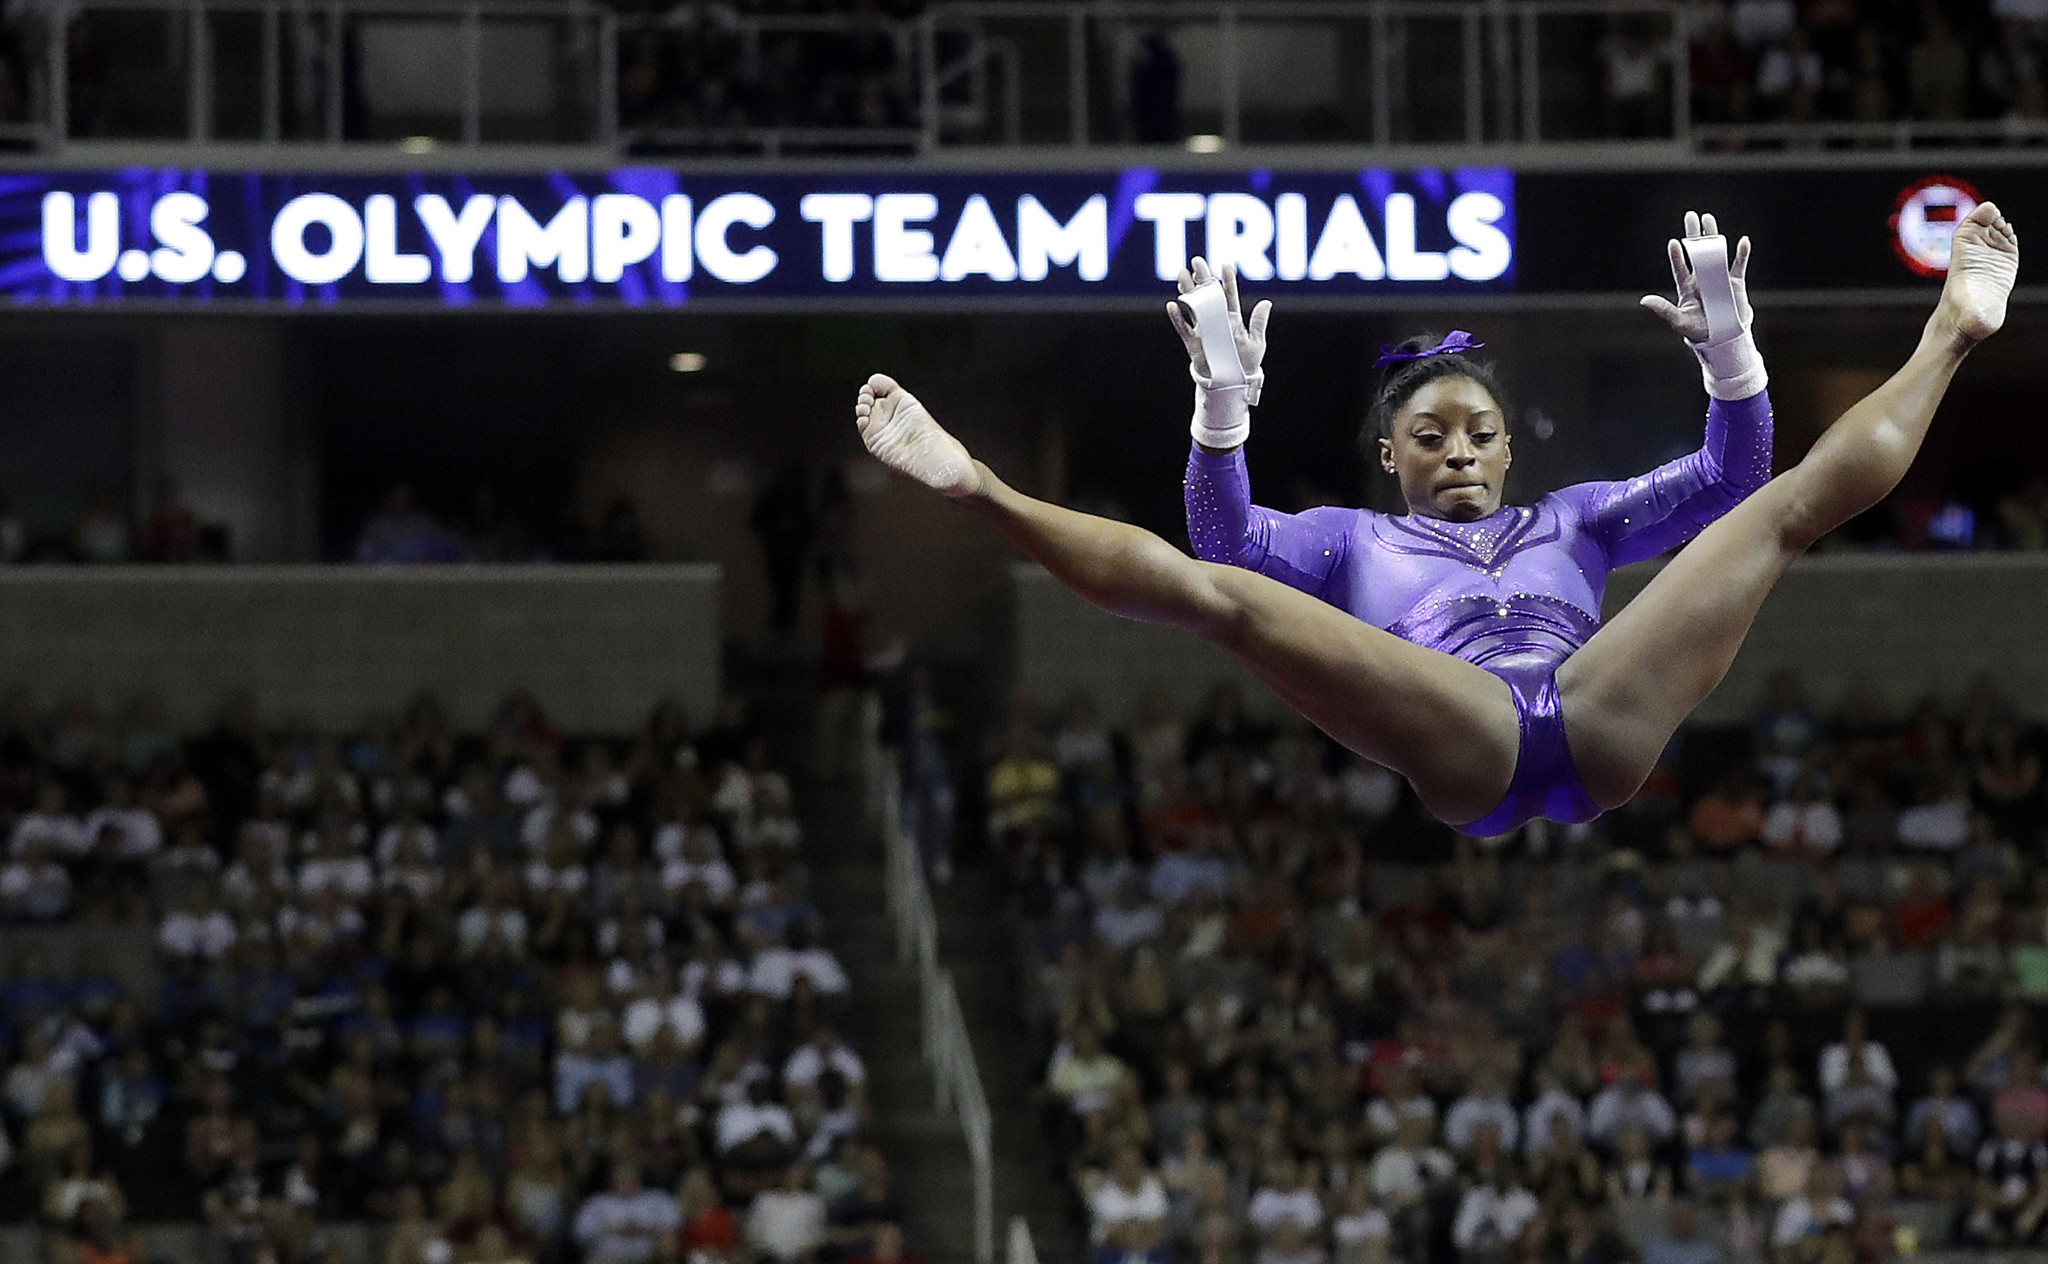 Simone Biles On Top After First Day Of Olympic Trials